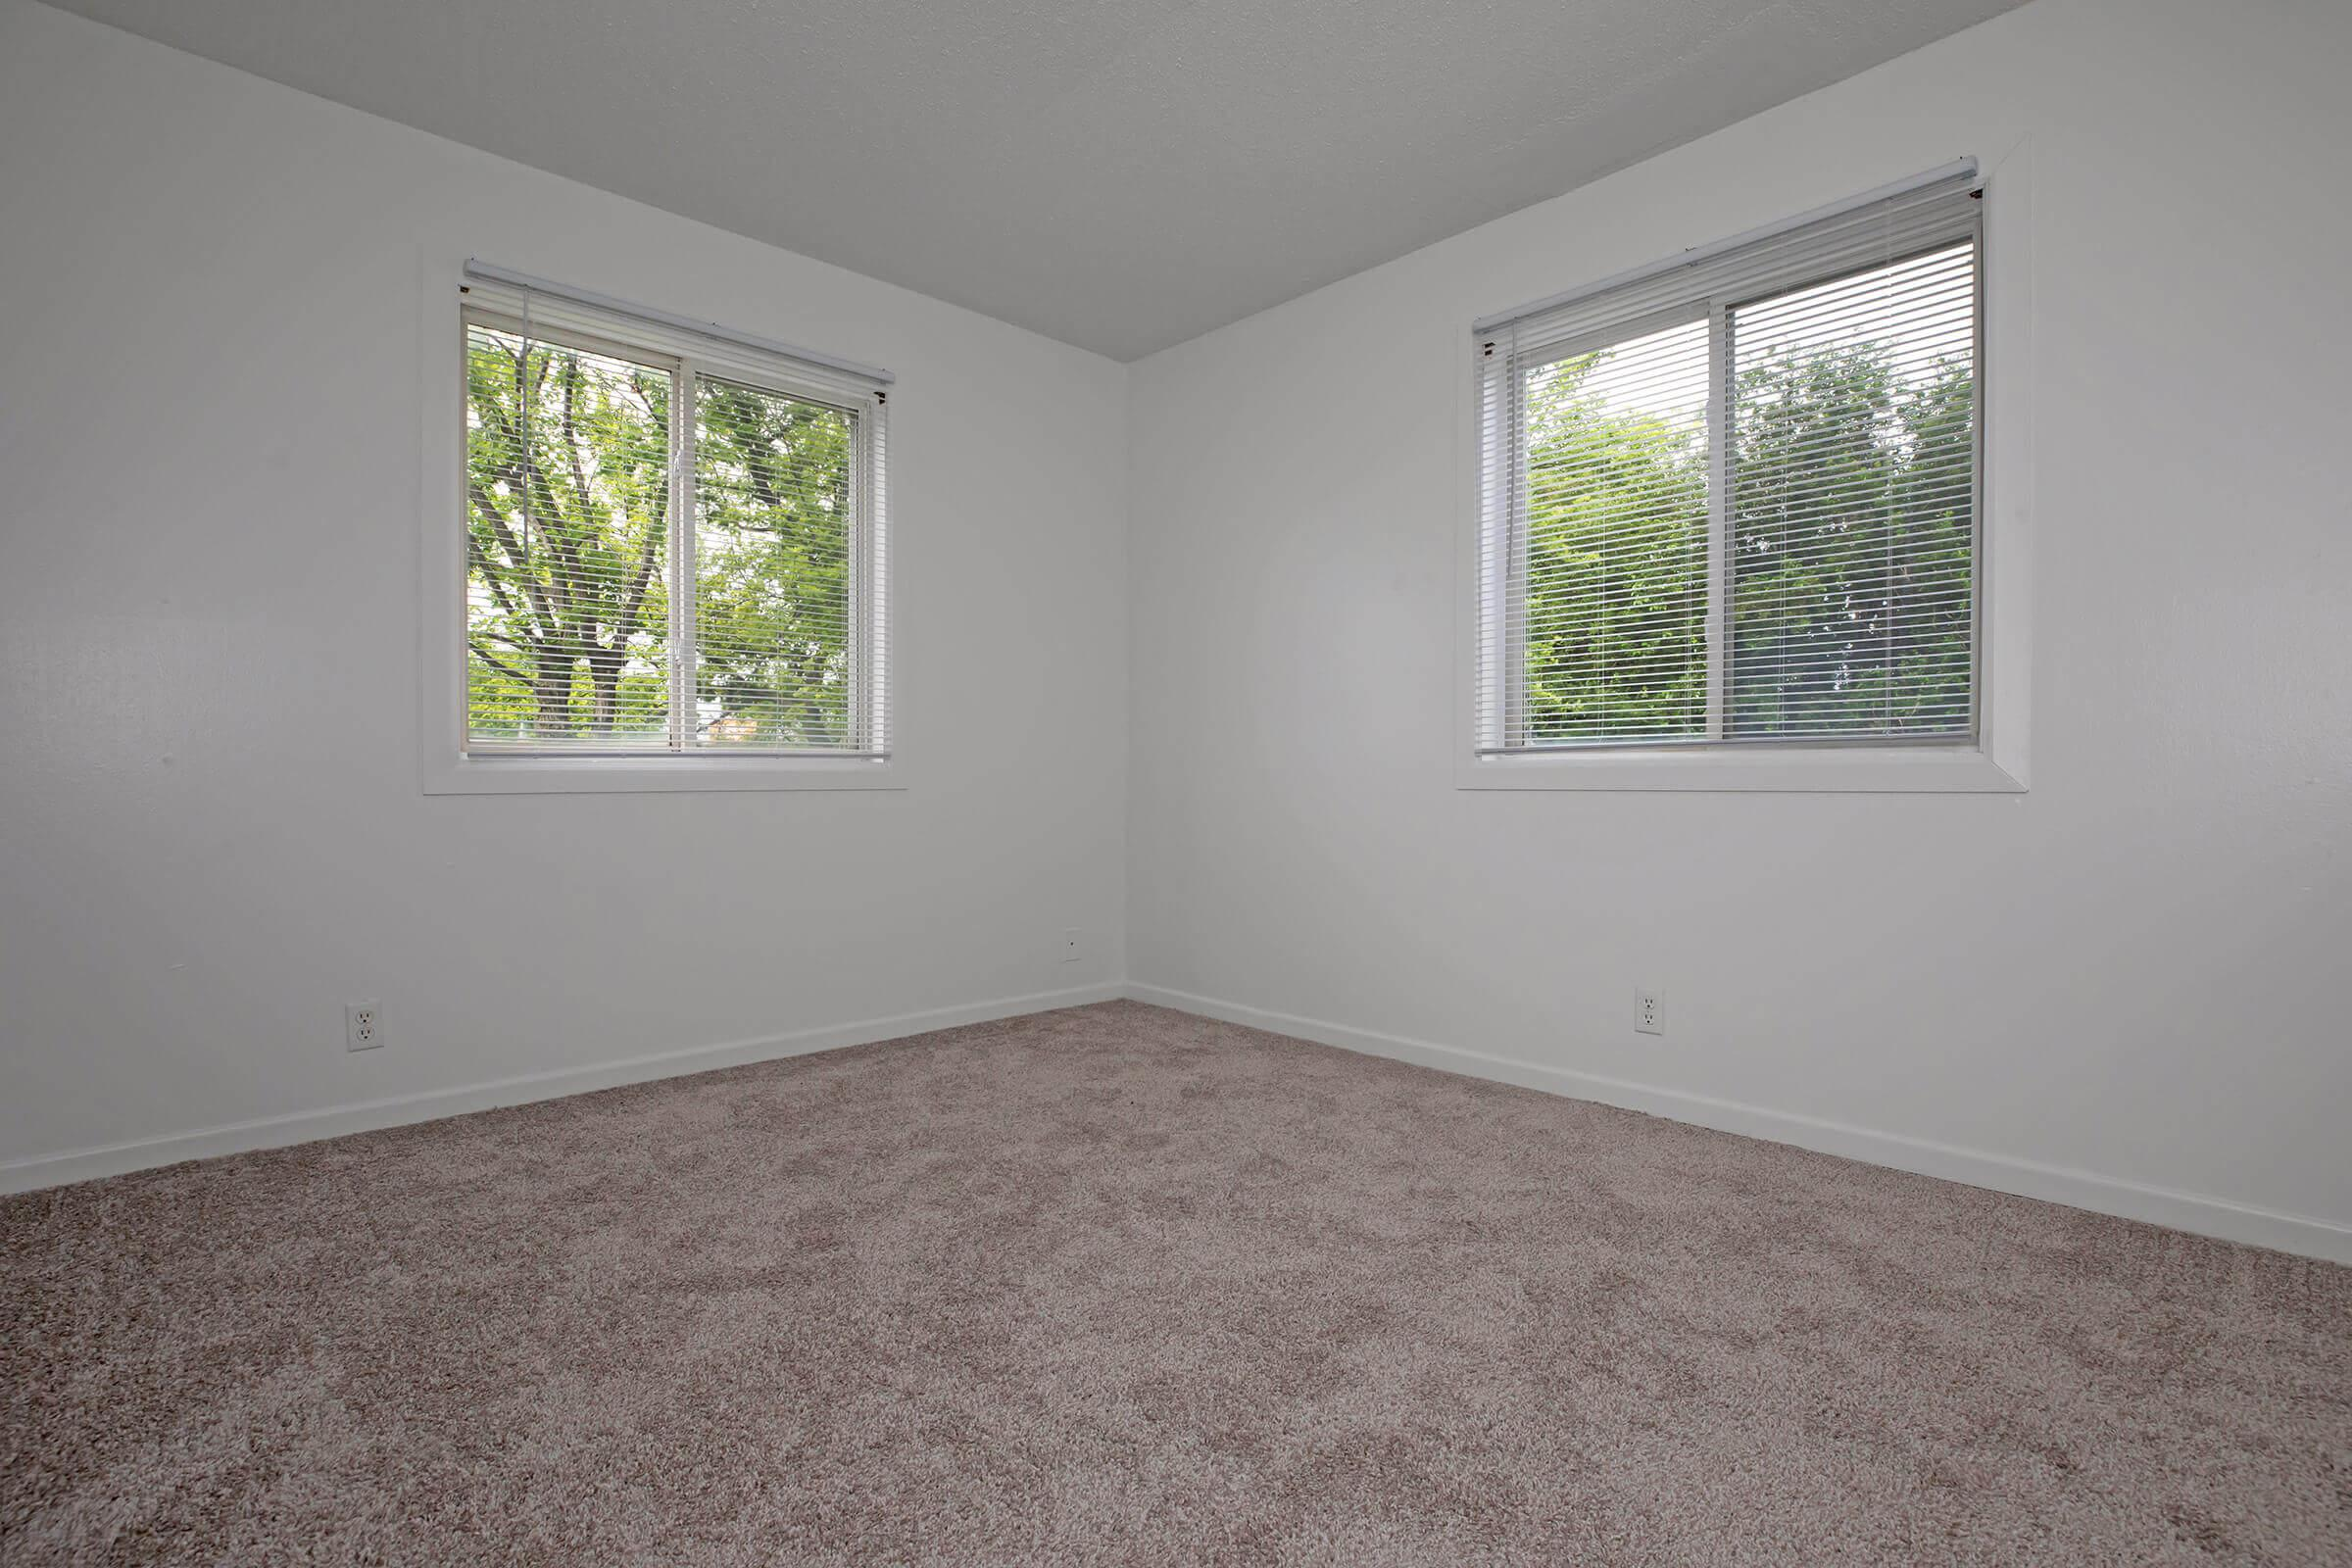 a room with a bed and a window